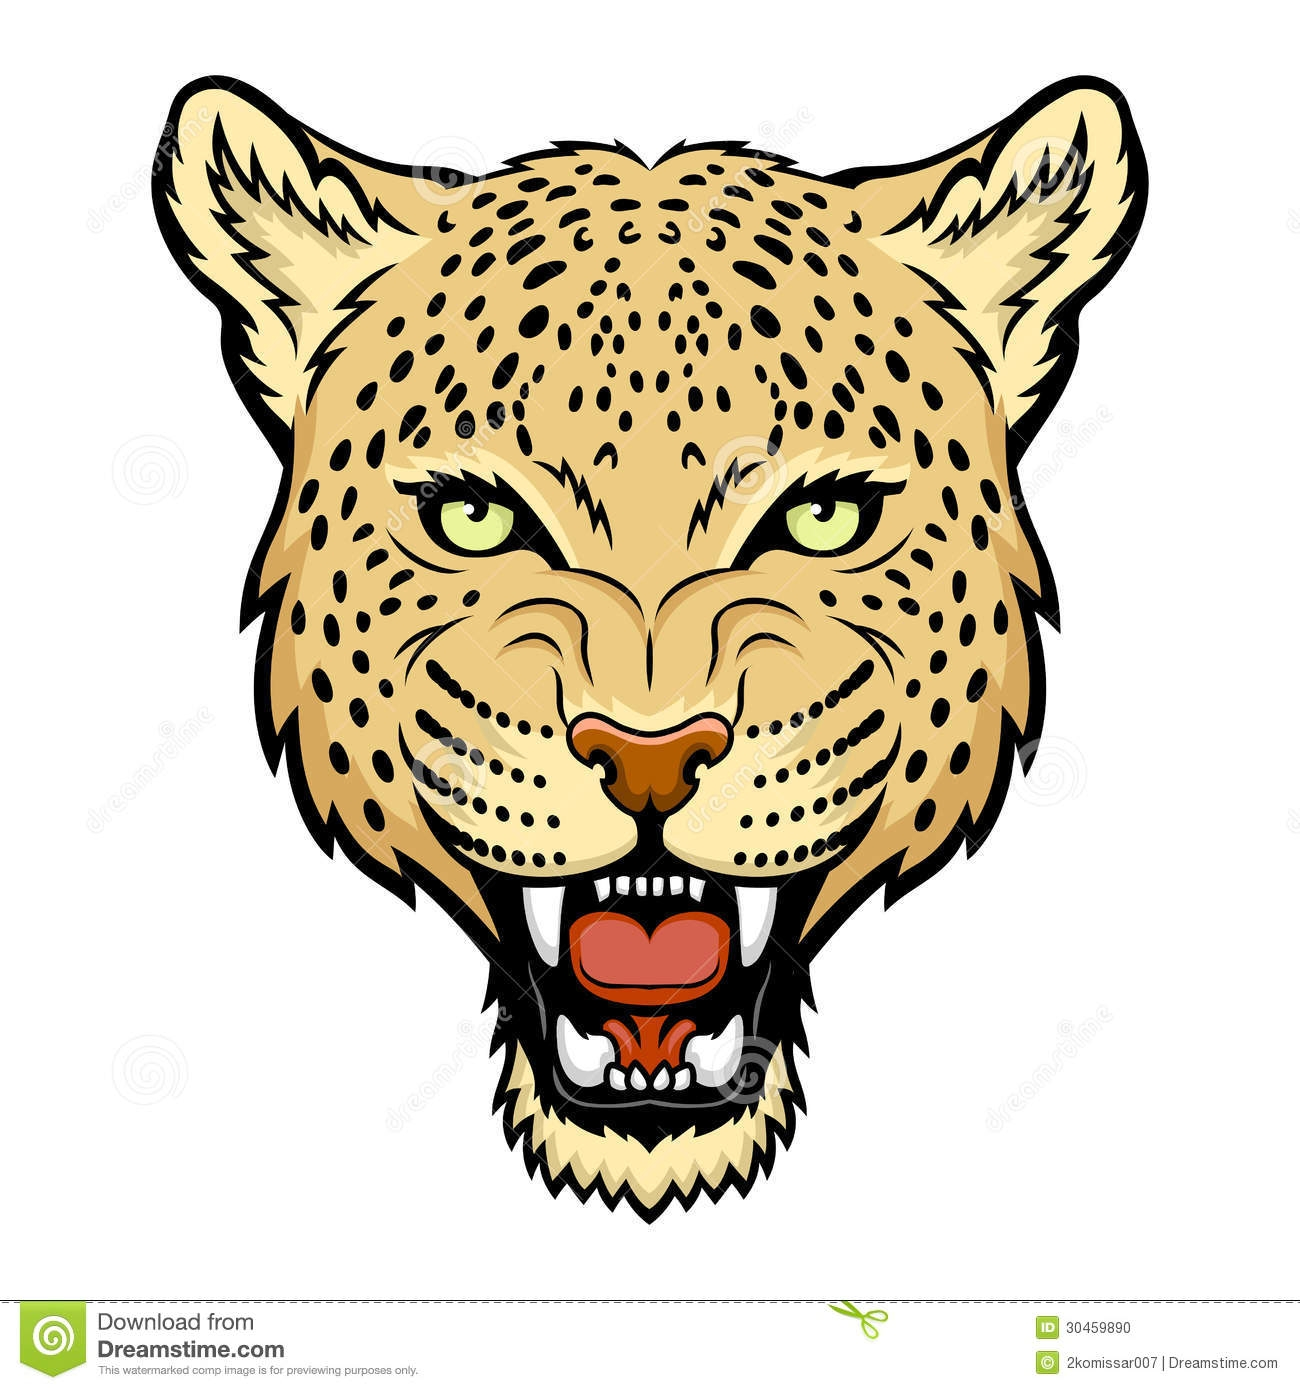 Amur Leopard clipart #19, Download drawings